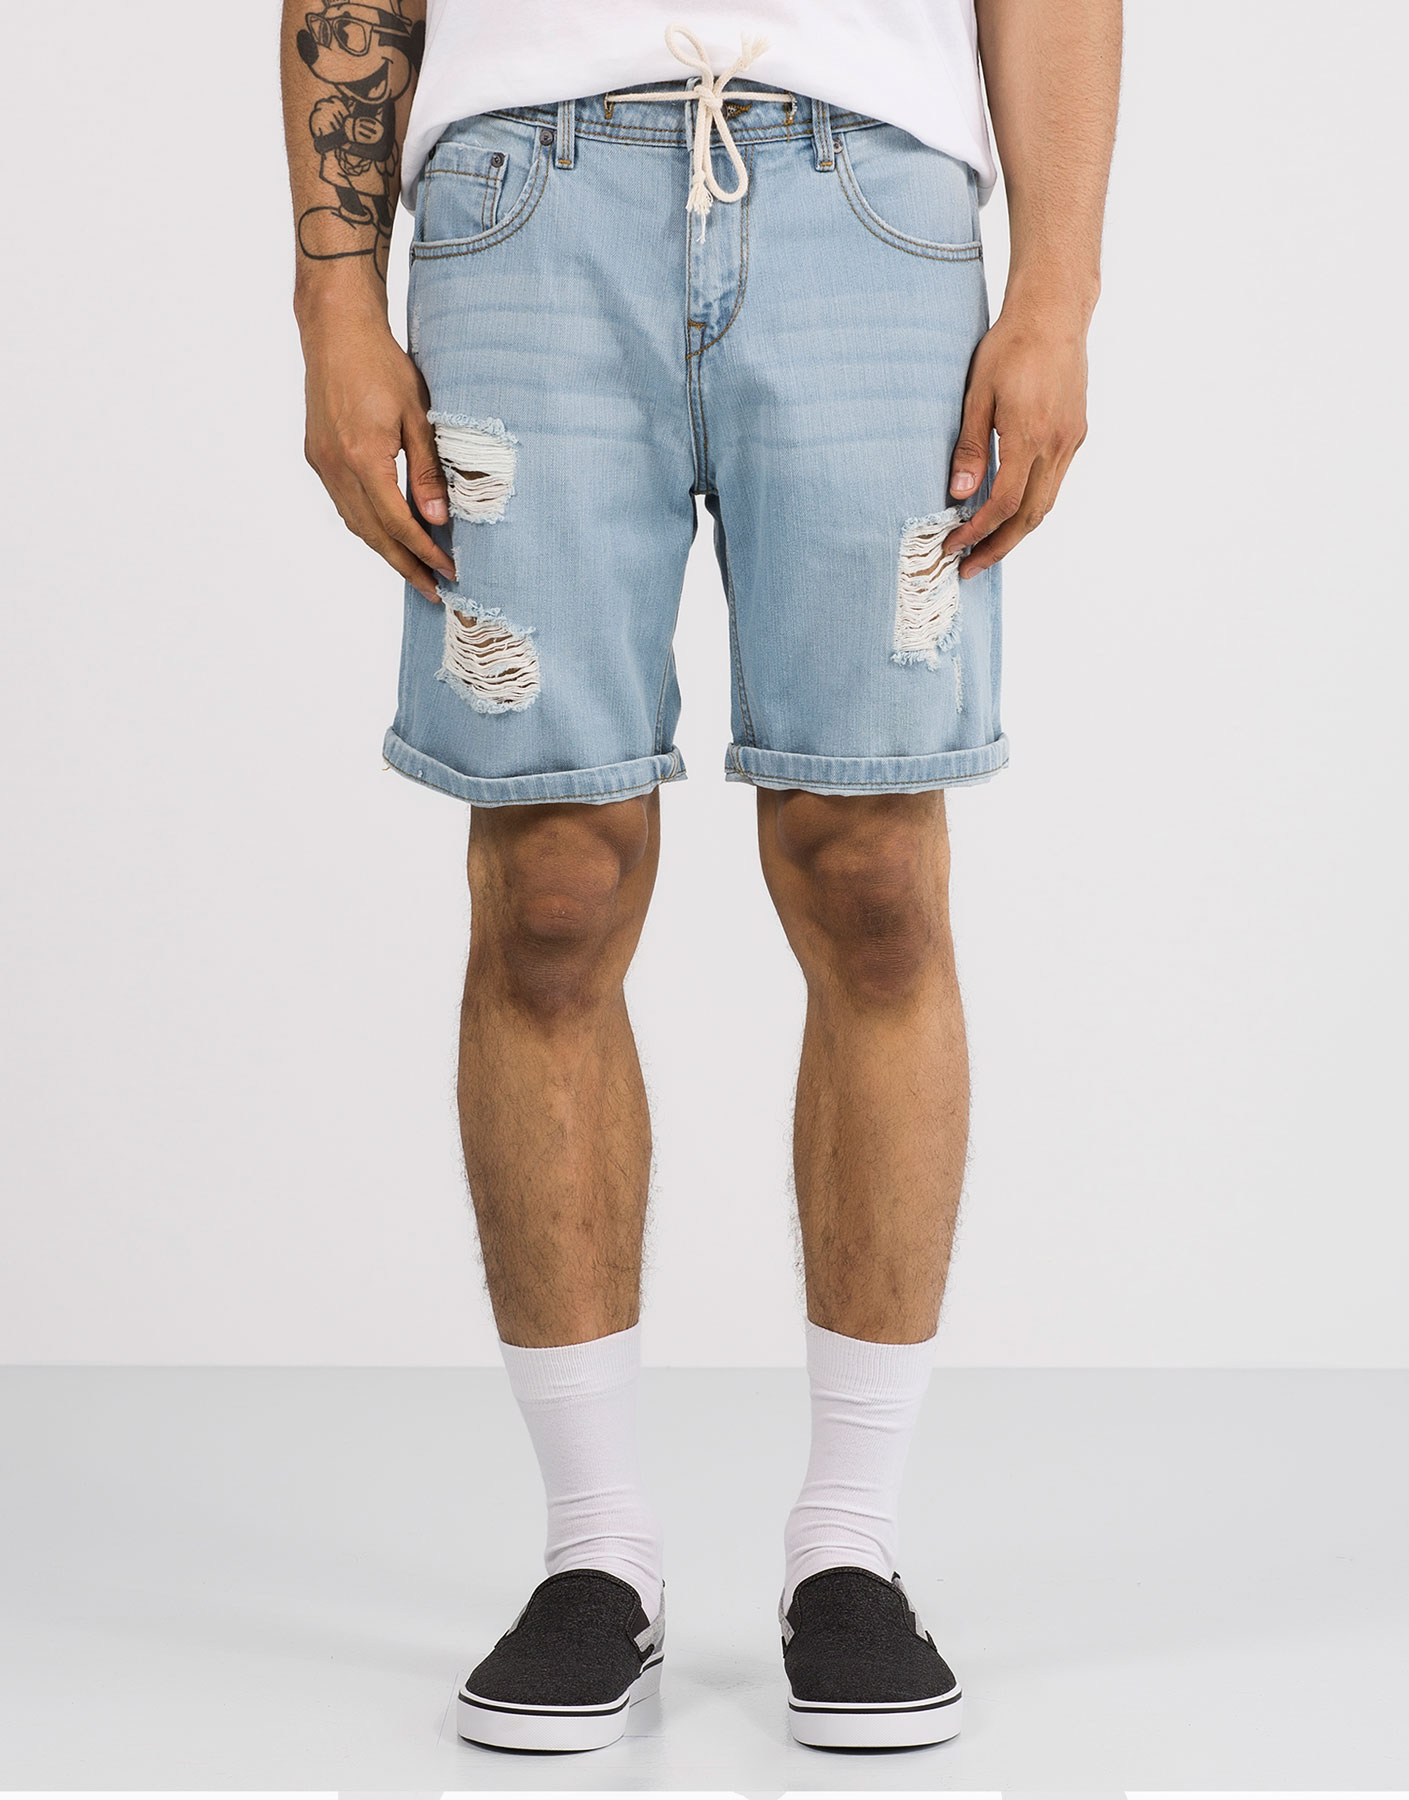 Bermudes denim bleach